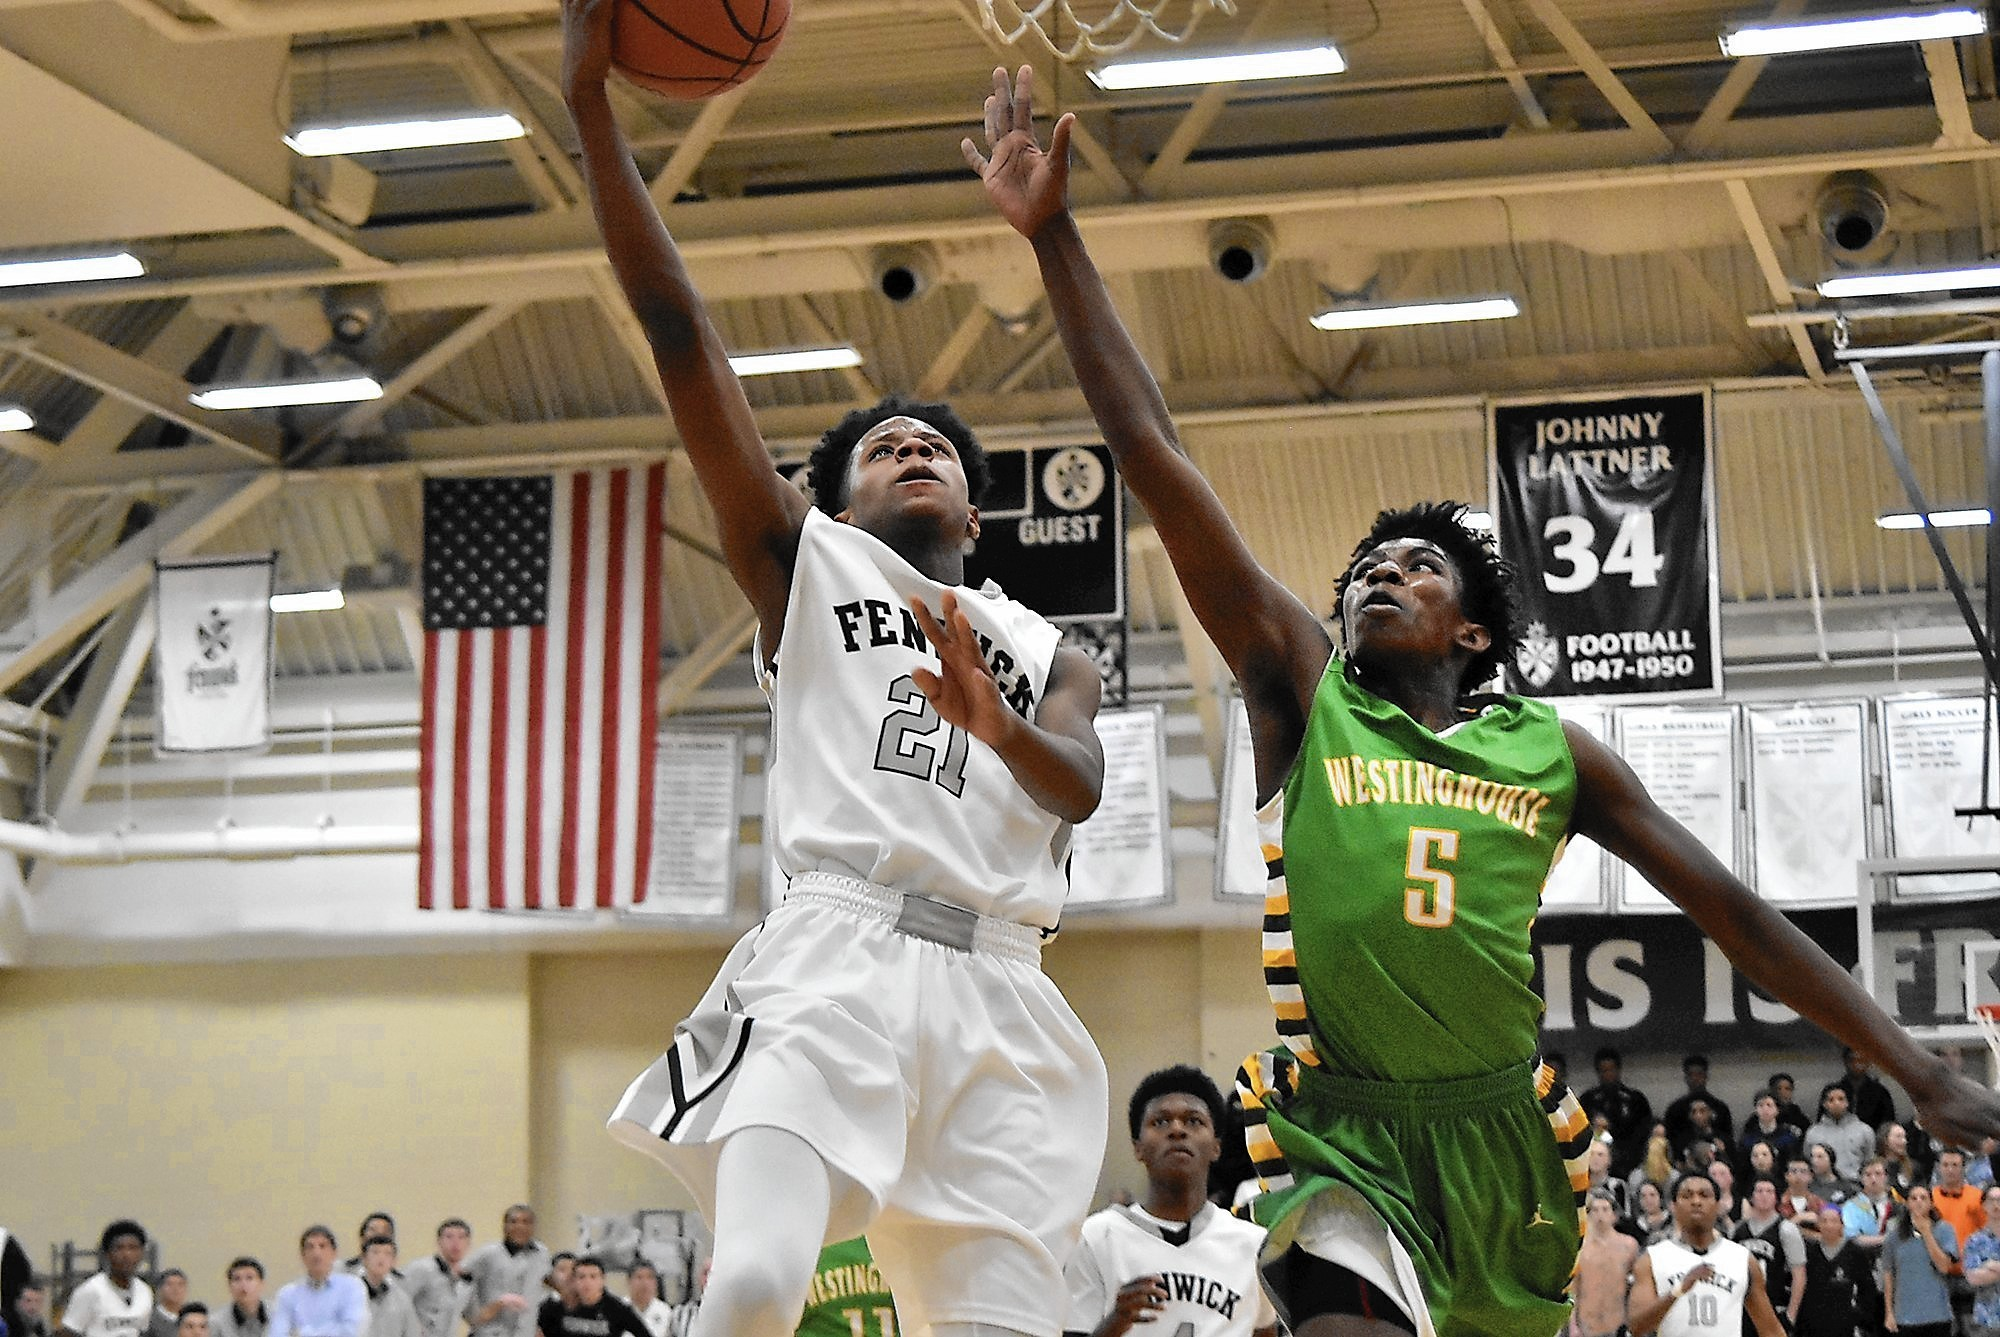 Freshman phenom DJ Steward emerges for Fenwick